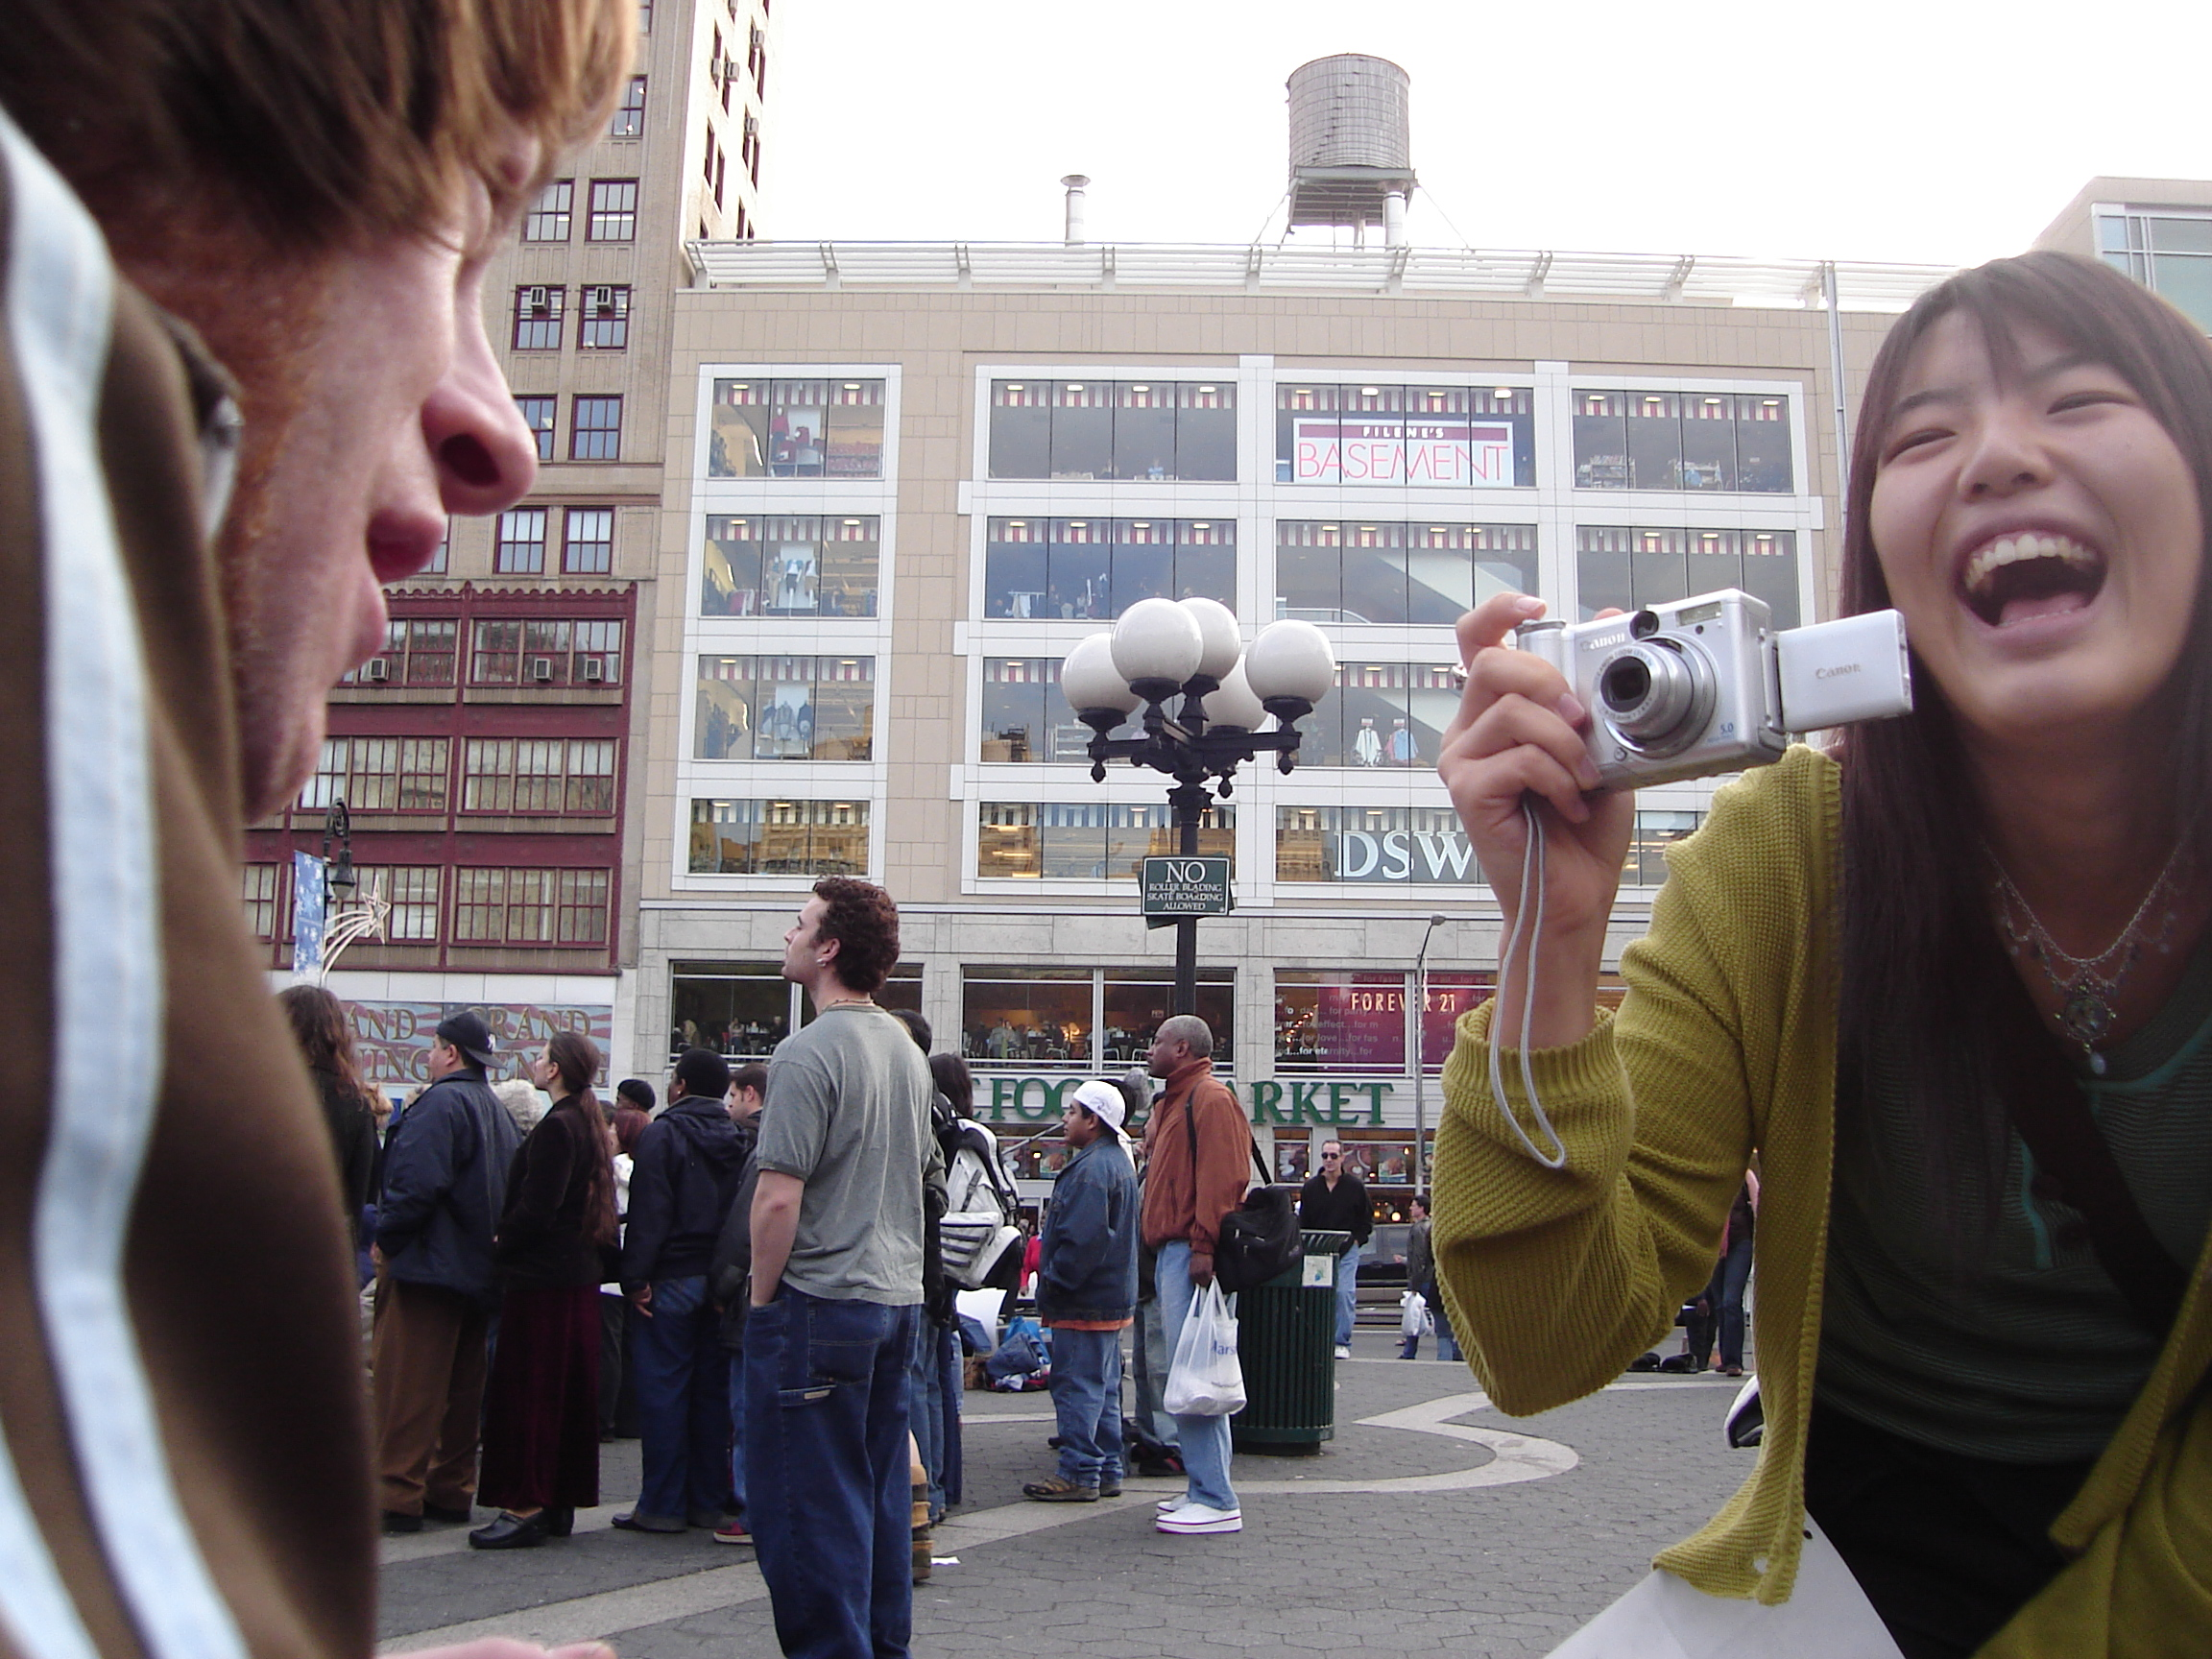 Woman laughing at Shaggy while taking his picture